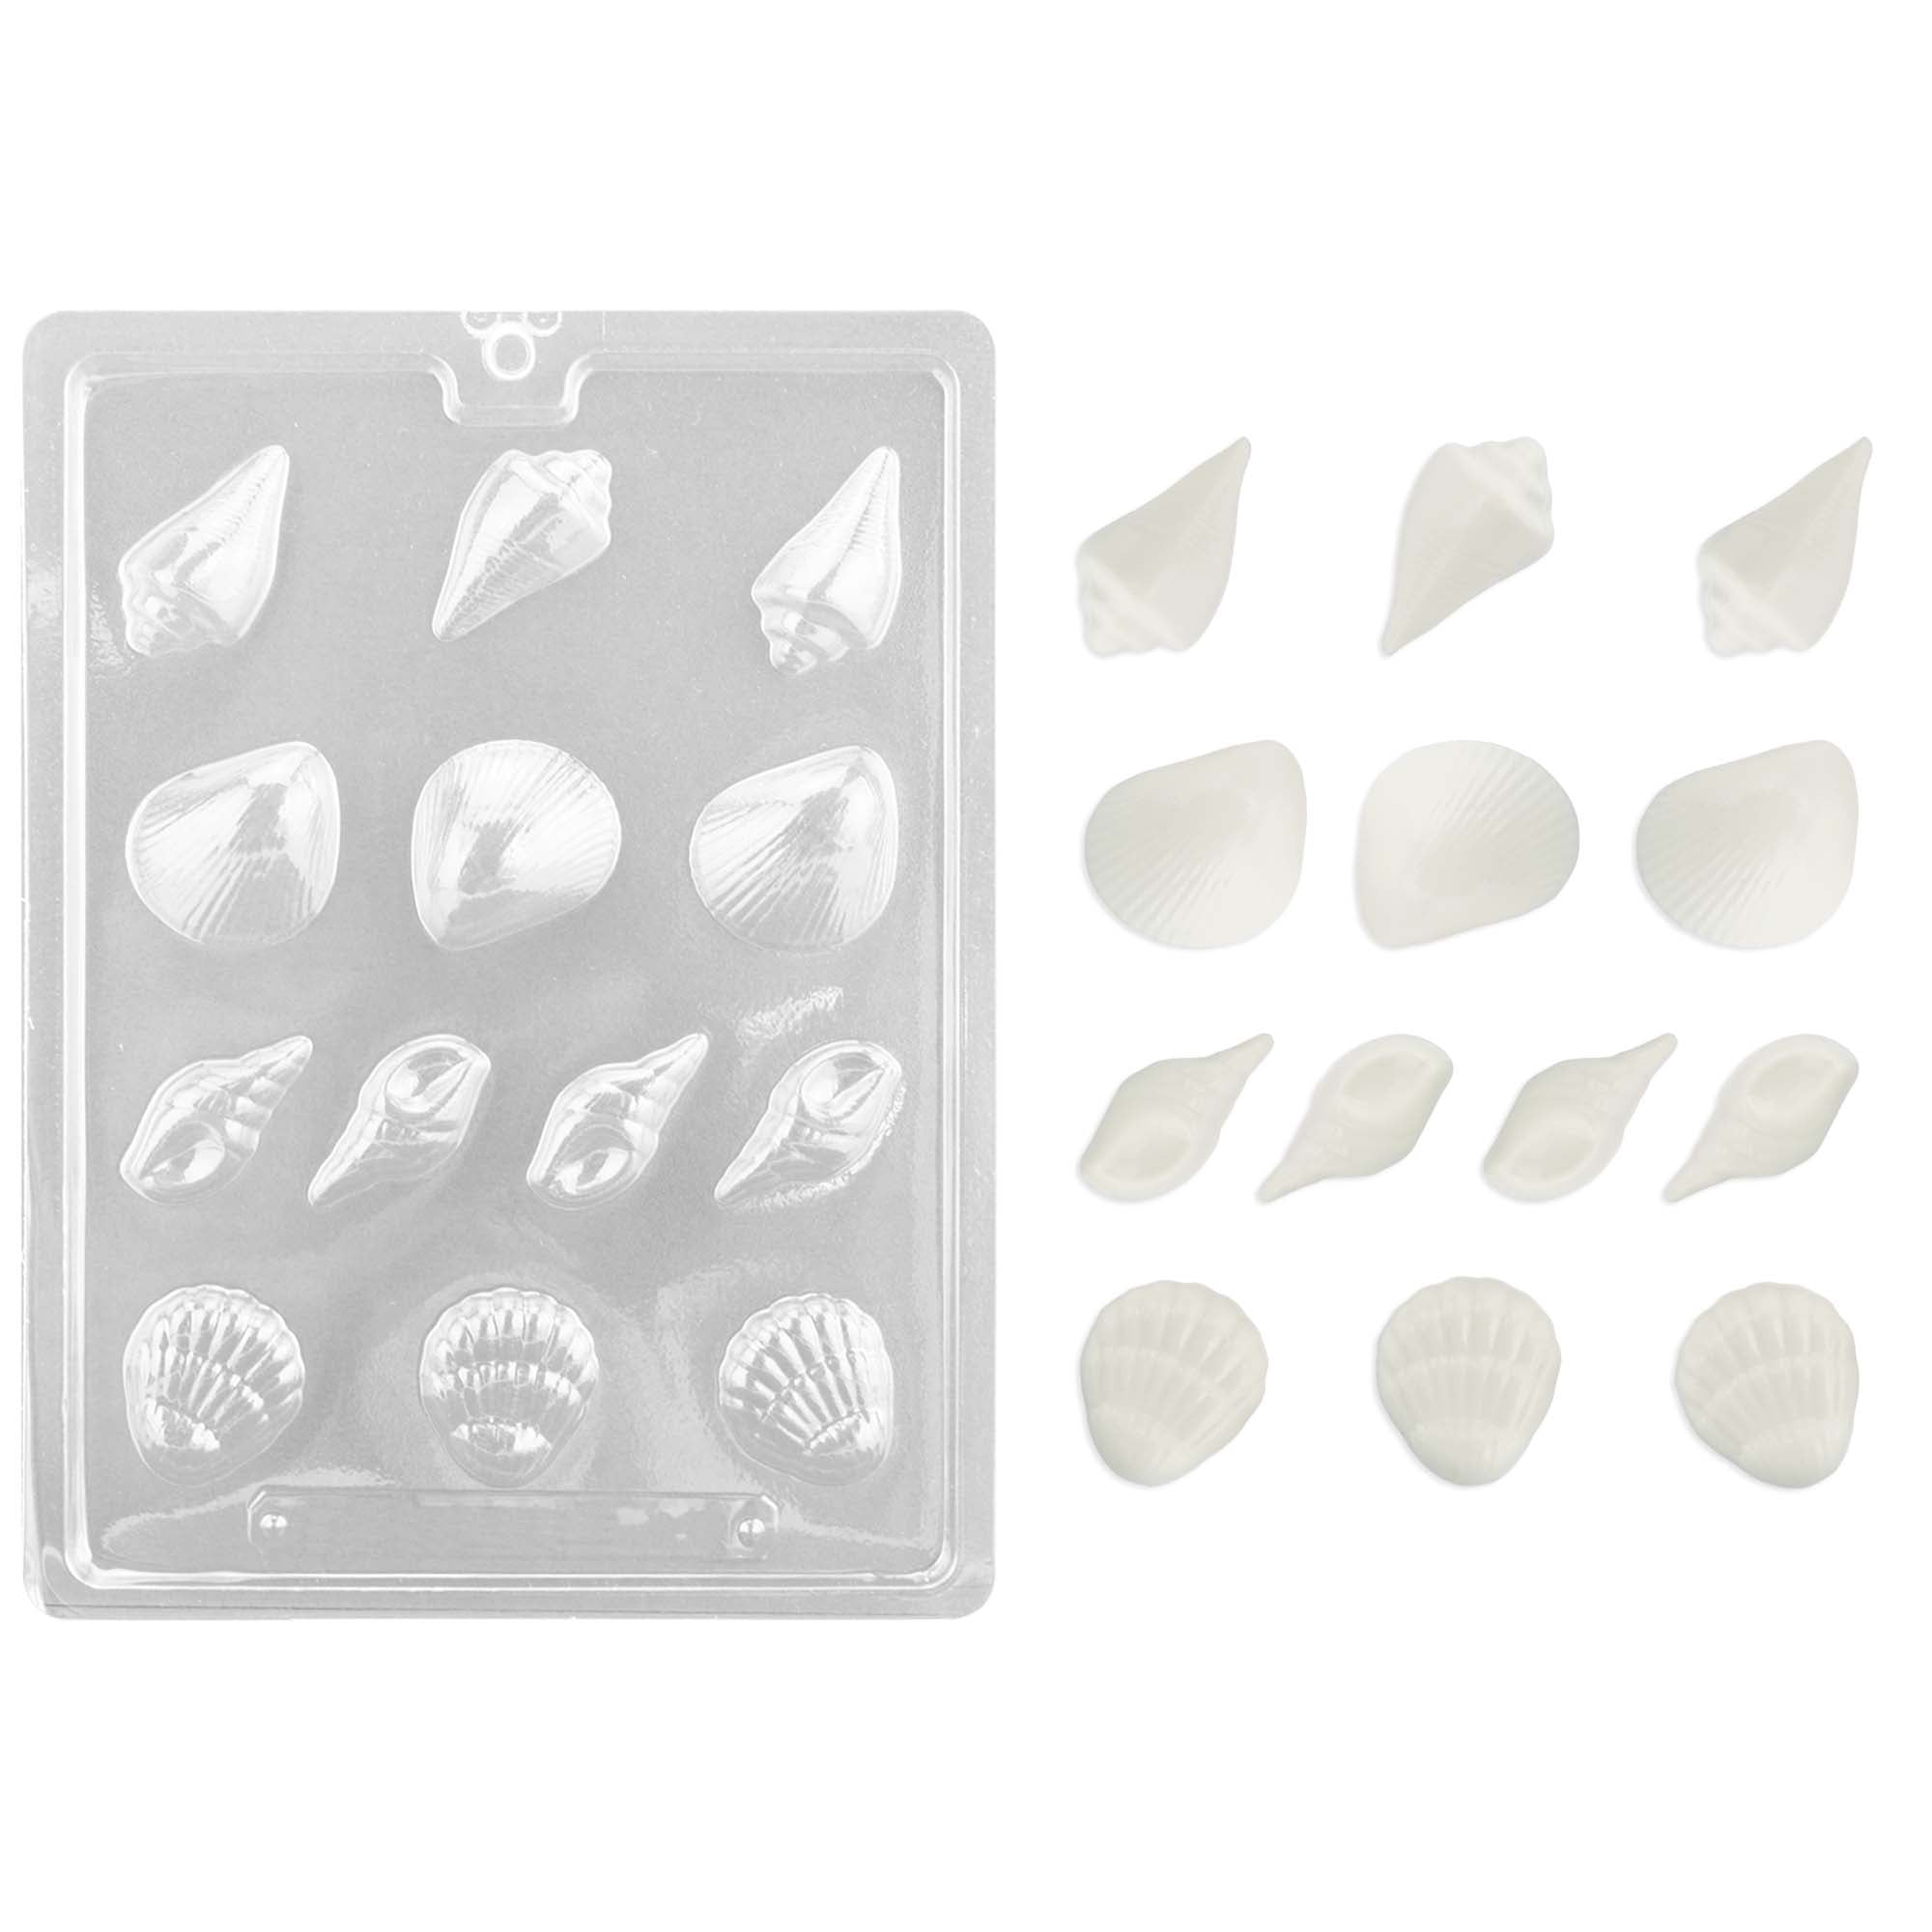 Shell Assortment Chocolate Mold